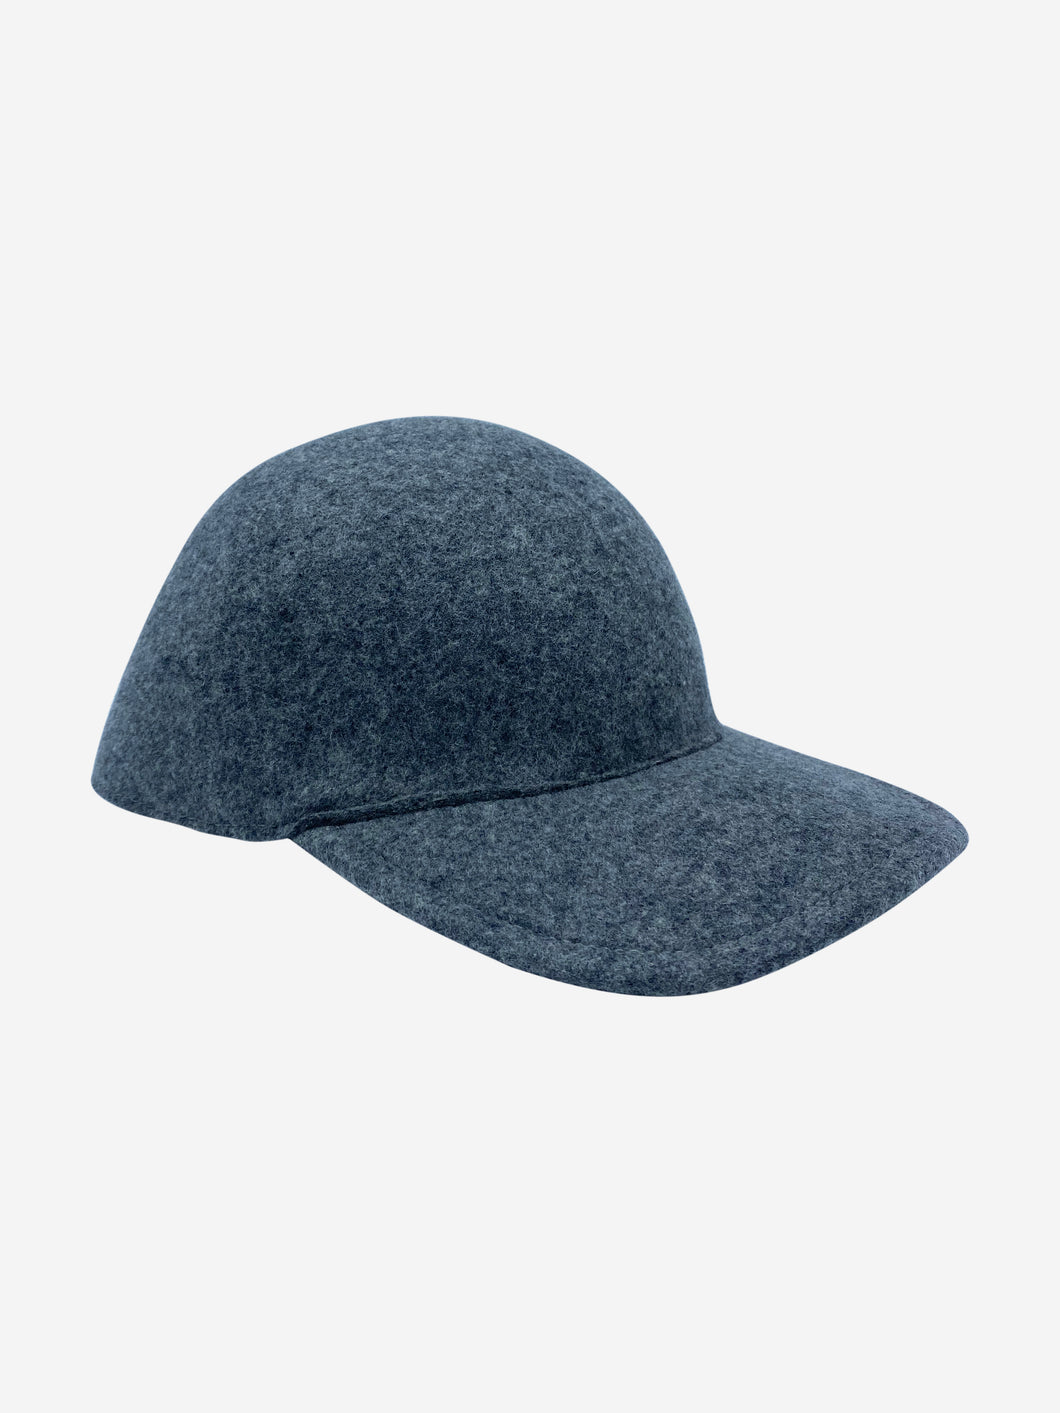 Grey felt wool baseball cap